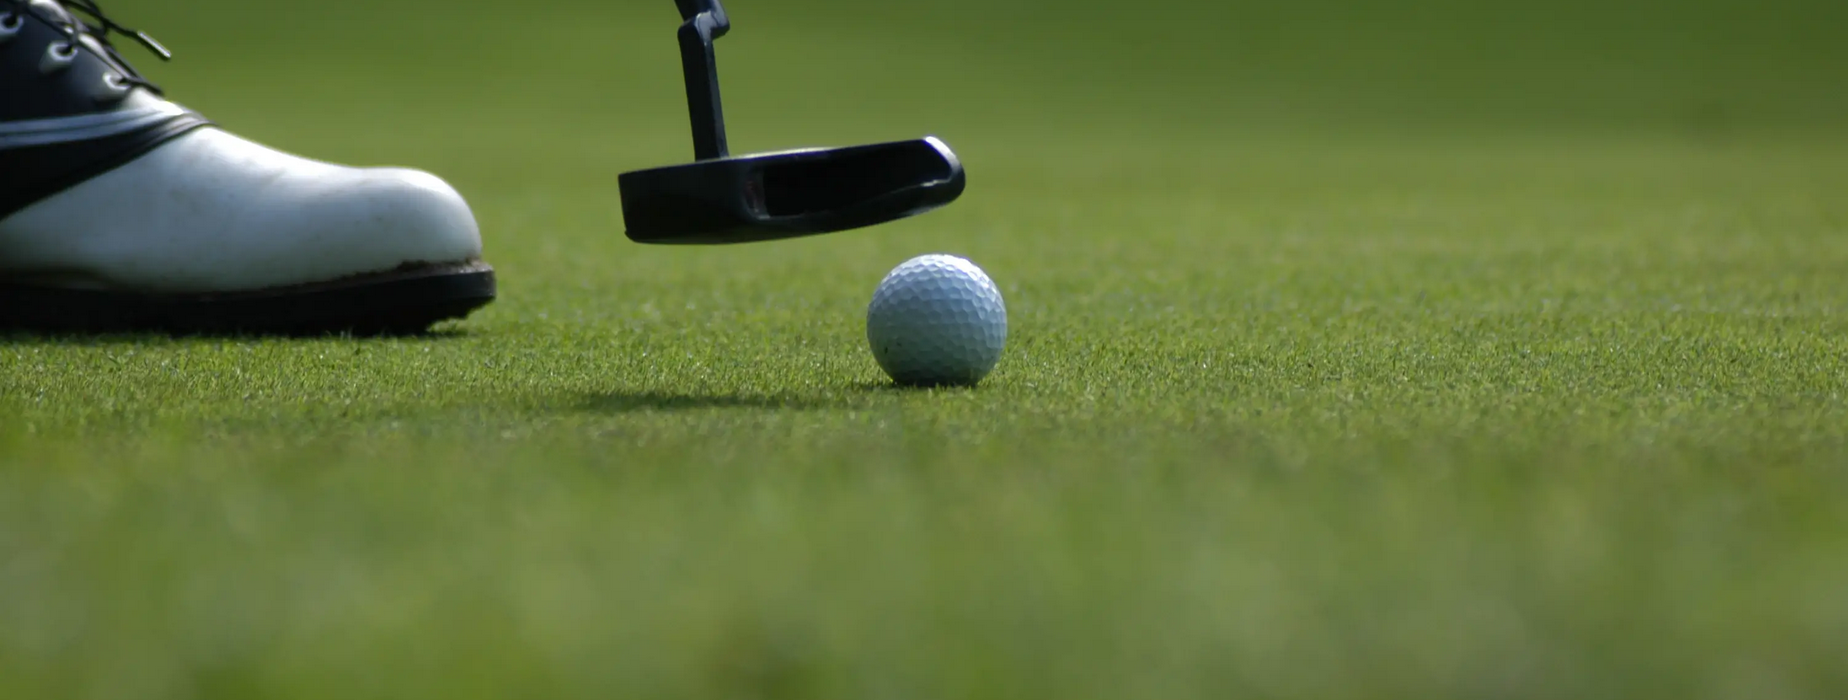 View of golfer's foot and club preparing to hit a ball